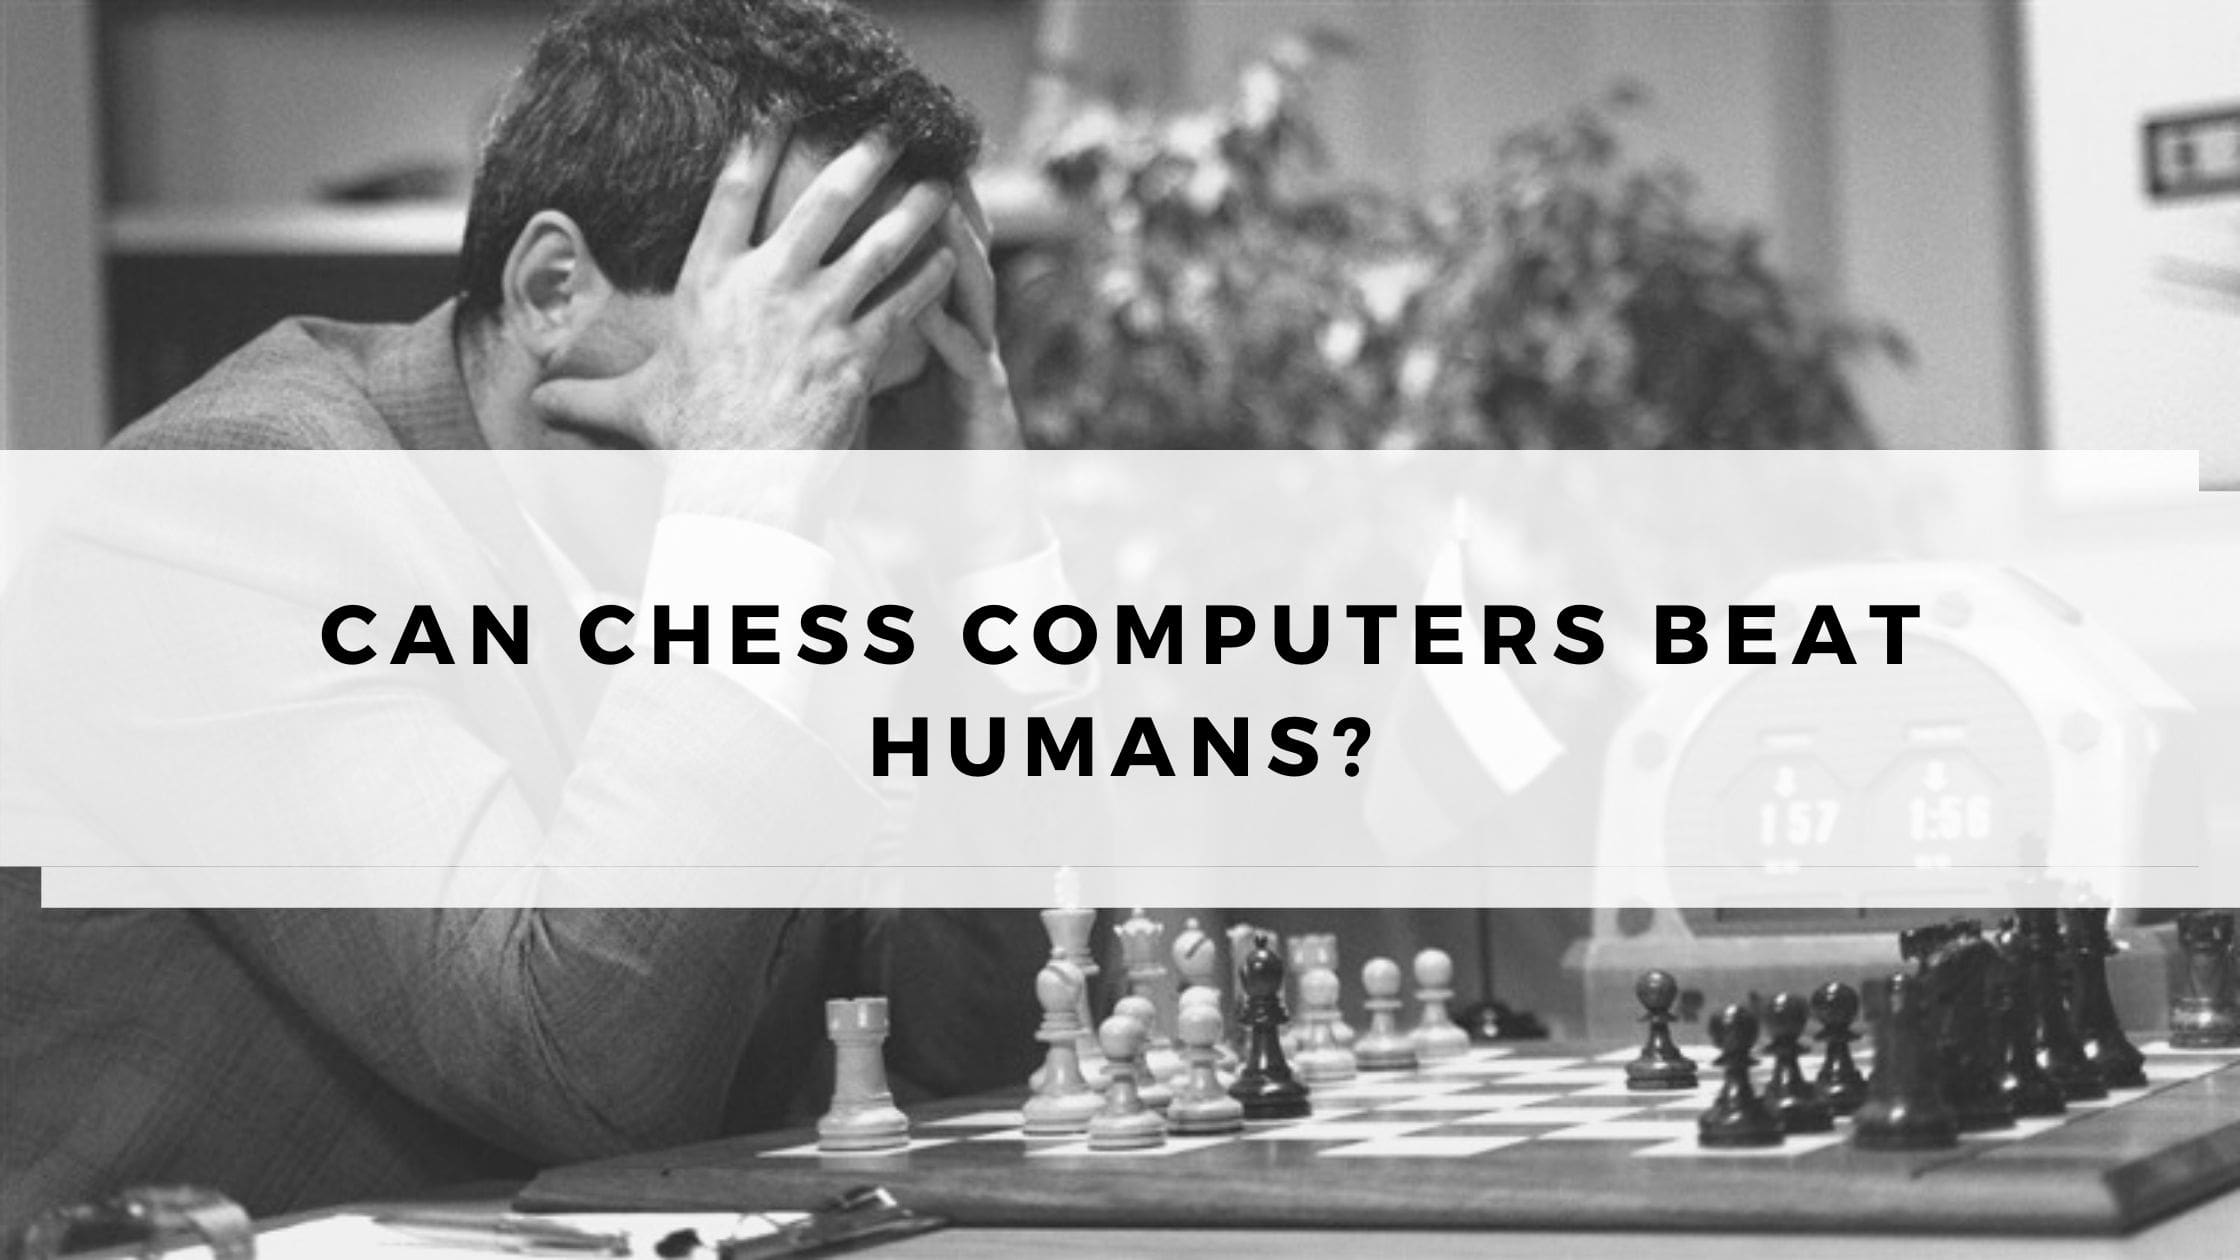 Can Chess Computers Beat Humans?